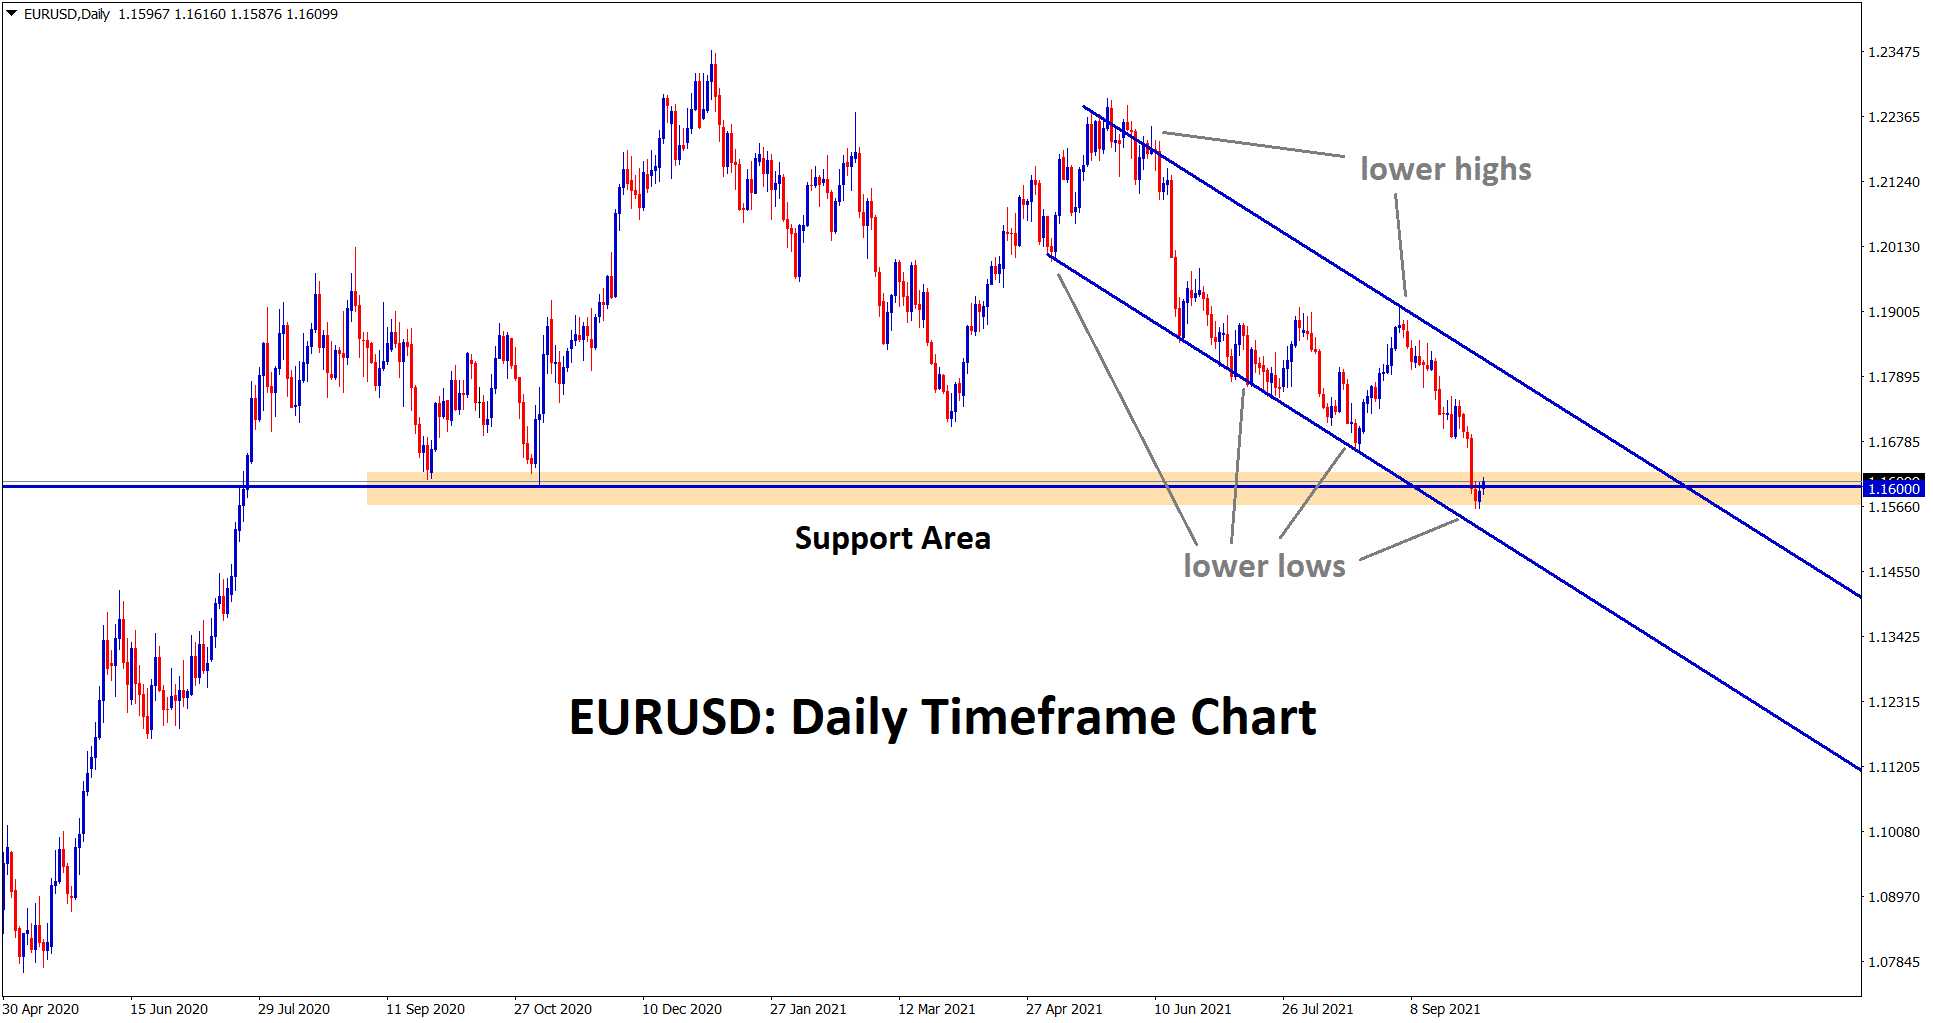 EURUSD rebounding from the support area and the lower low level of channel